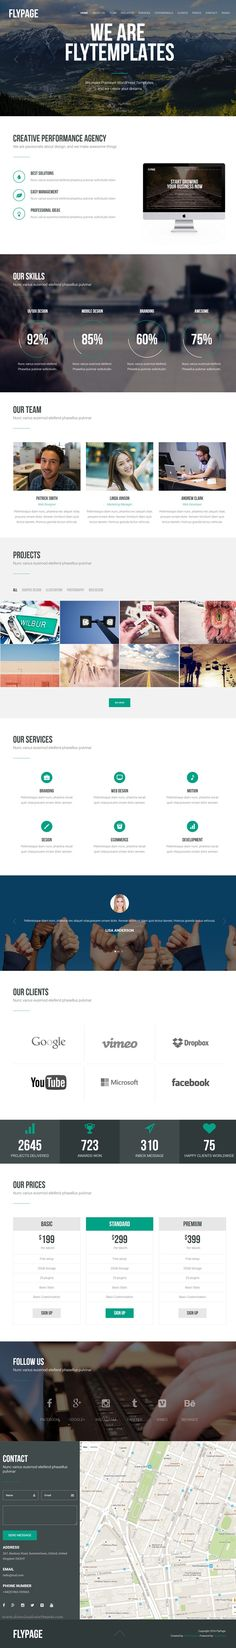 FlyPage is a Minimalist Landing Page #WordPress Theme, responsive bootstrap based. It can be used for Business, Portfolio, Agency an many more kinds of #websites, limit is your imagination. #landingpage